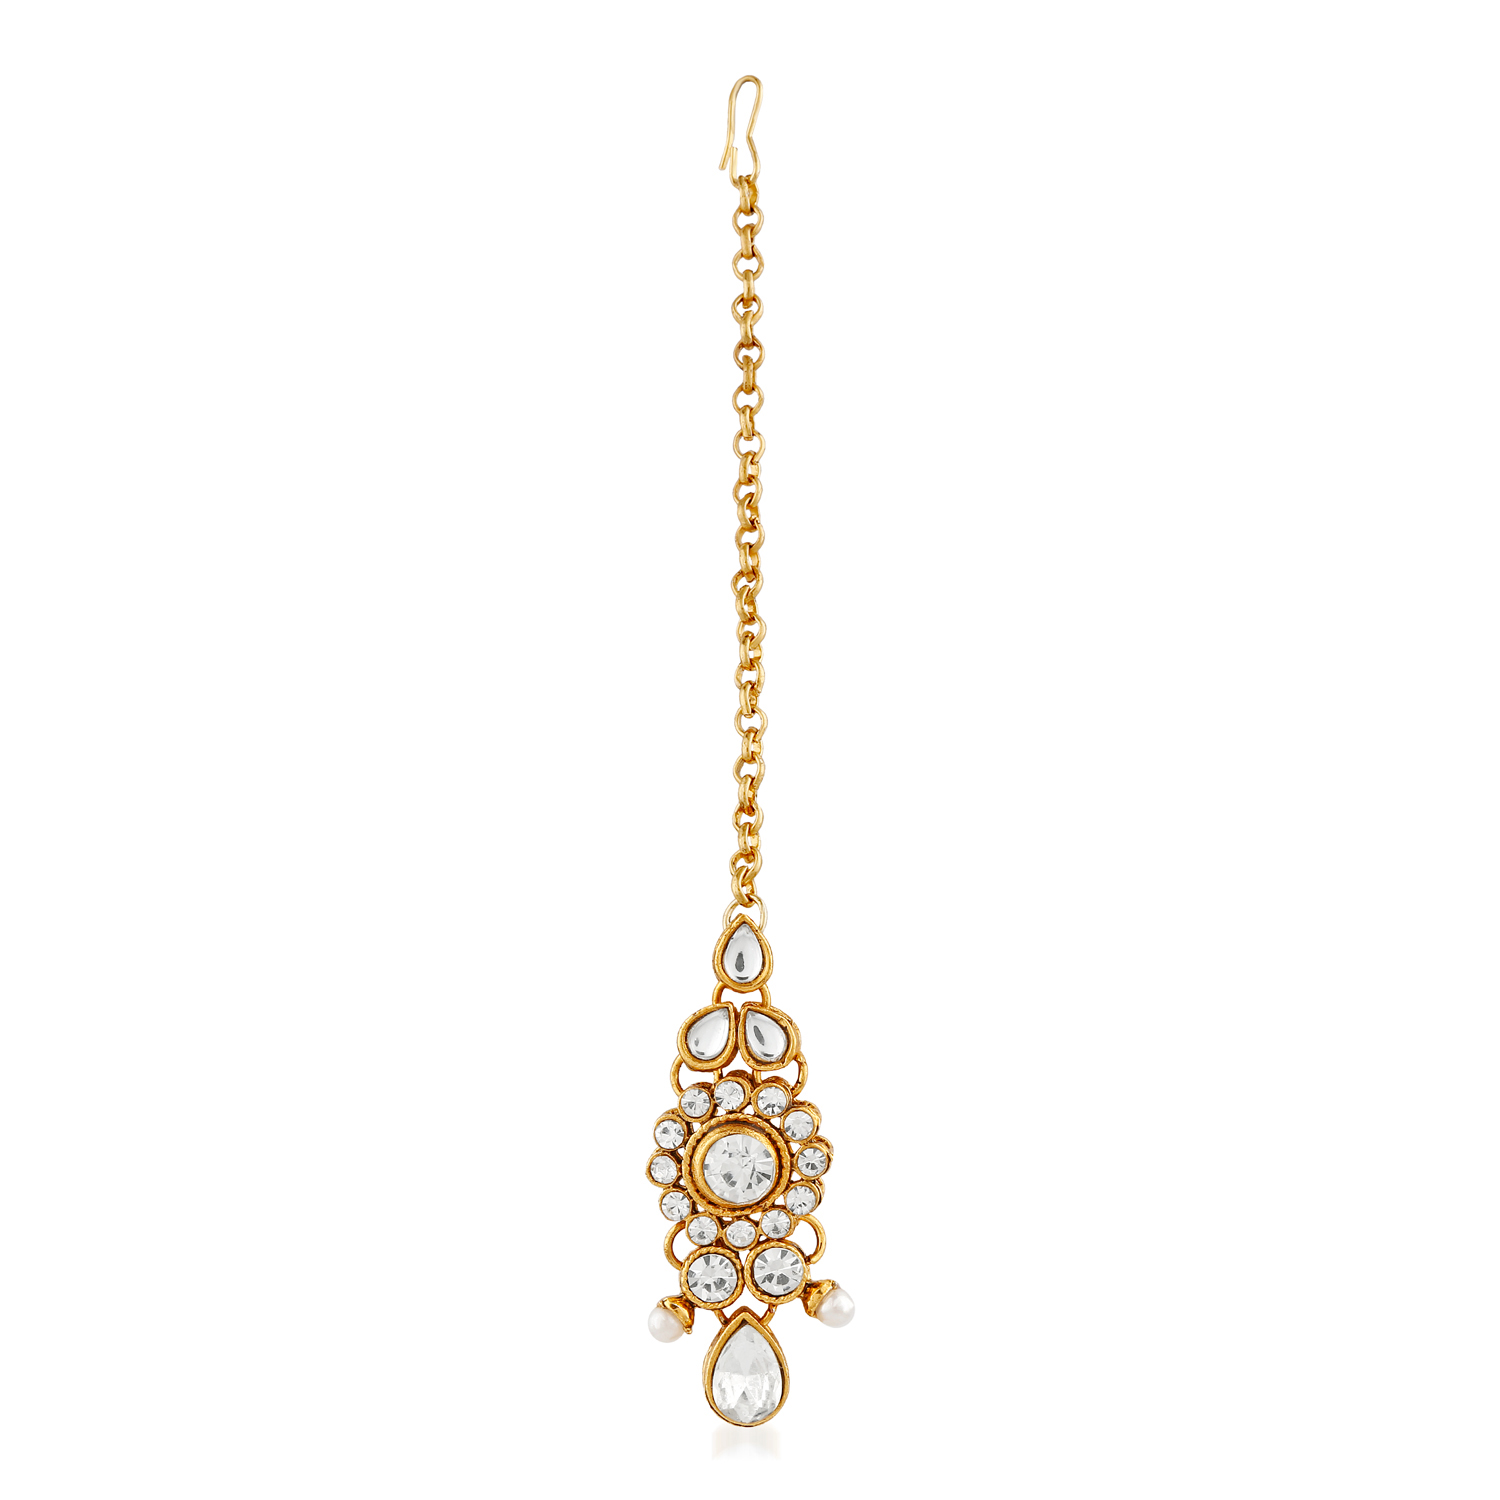 Splendid Design White Stone Pearl & Kundan Gold Finishing Necklace Set with Maang Tikaa